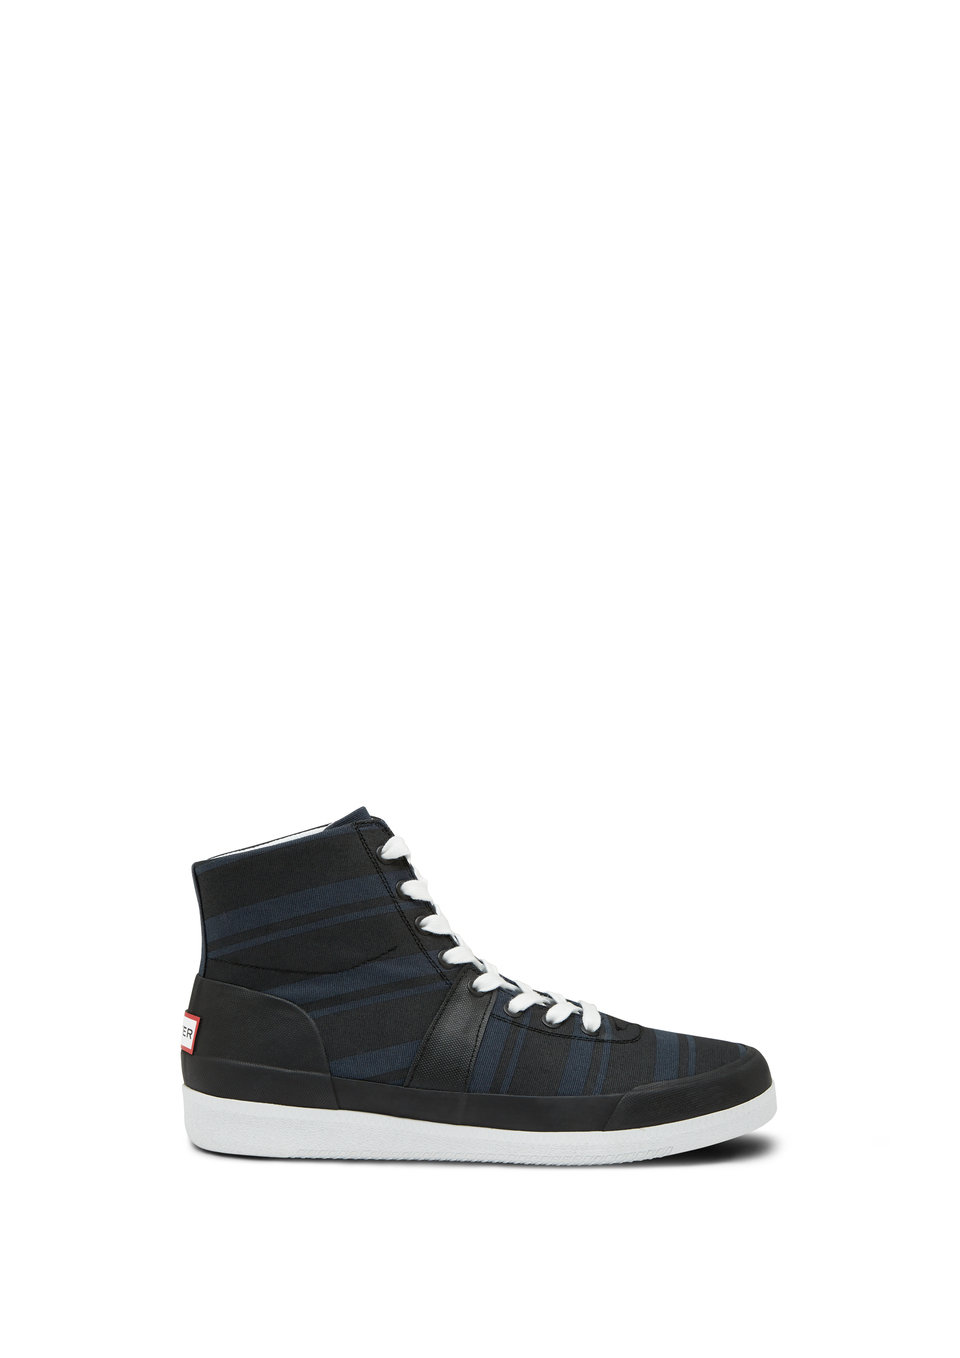 16_MENS GARDEN STRIPE HI TOP BY HUNTER ORIGINAL - MFK9005GDP-BNV 439 pln.jpg